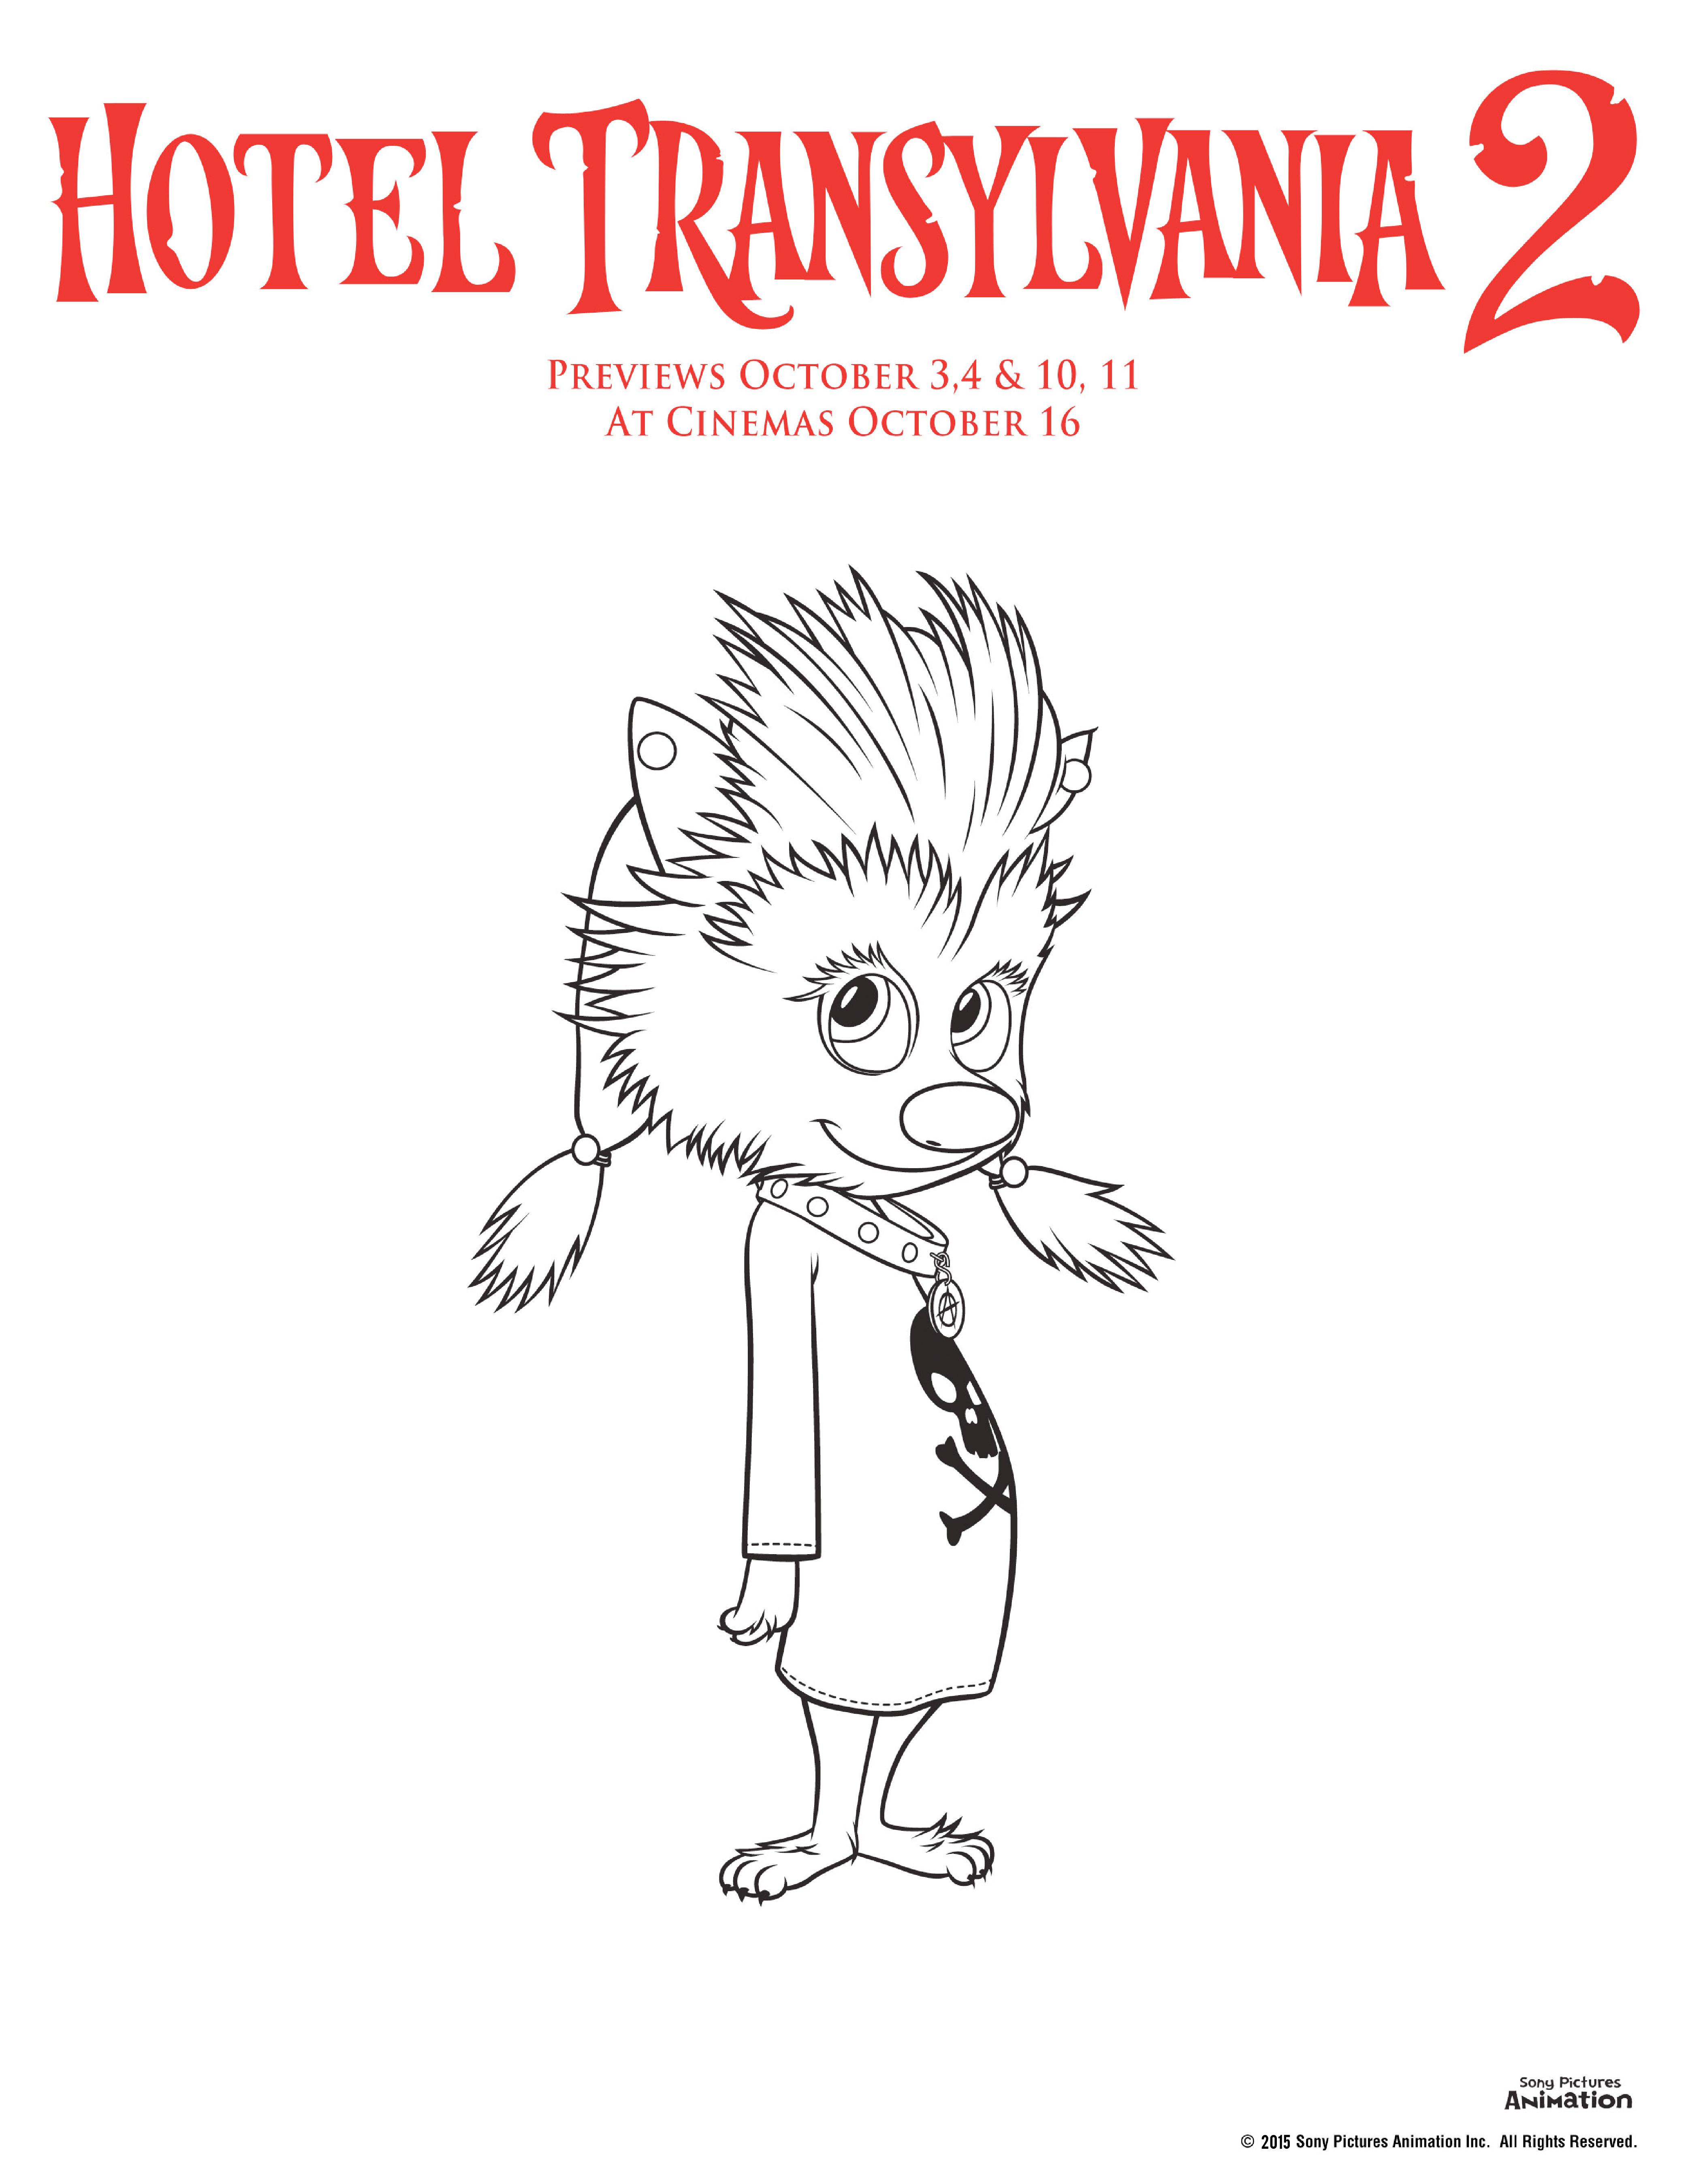 Hotel transylvania 2 colouring pages winnie the wolf pup colouring sheet, perfect for Halloween